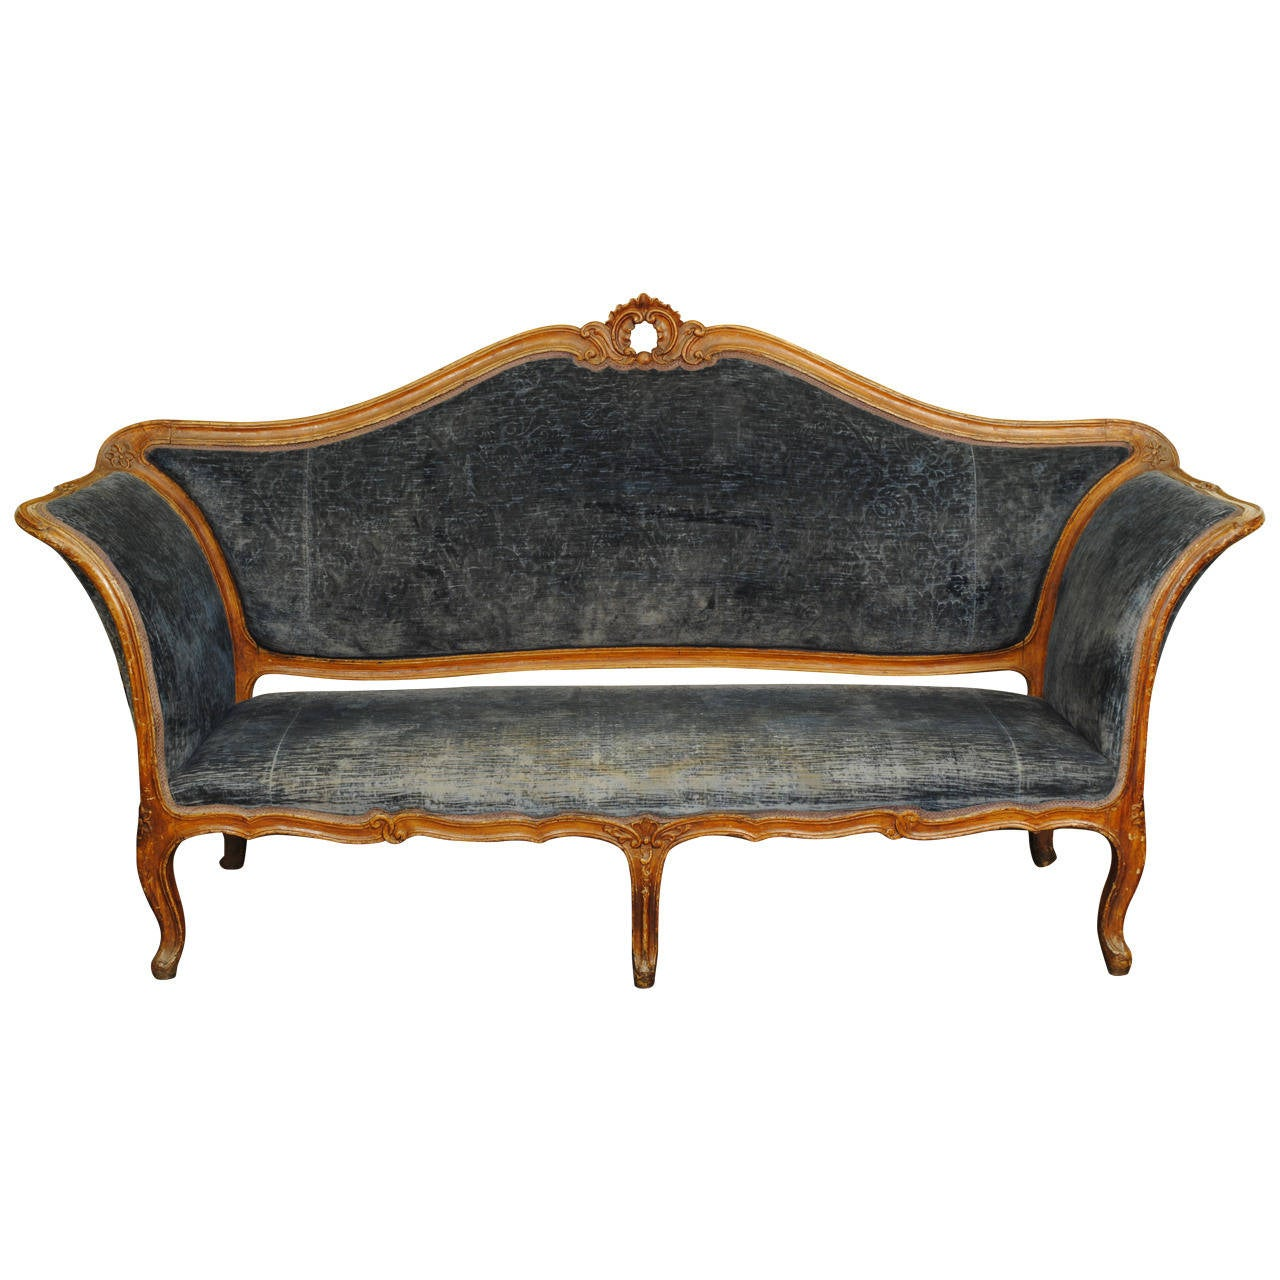 Italian Piemontese Mid 18th Century Carved And Painted Divano At 1stdibs